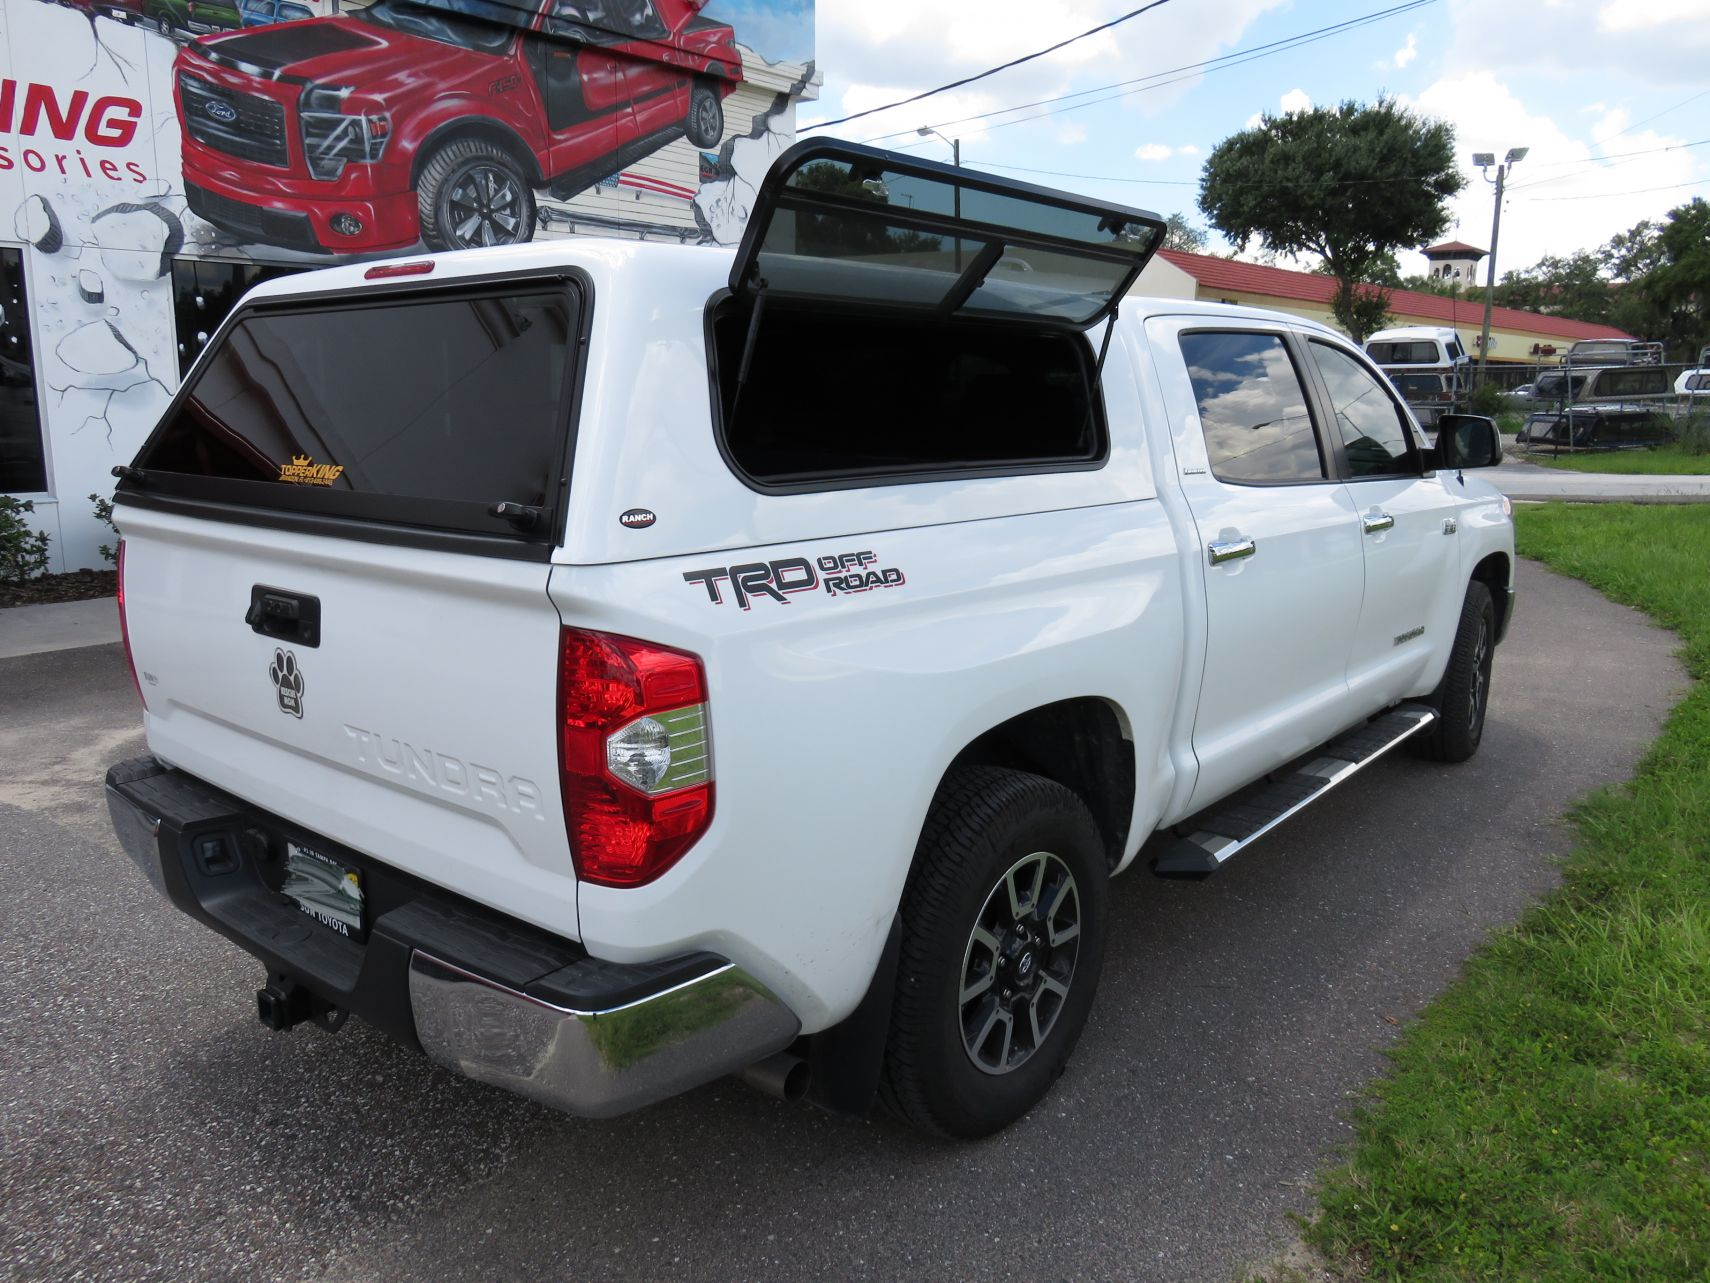 2017 Toyota Tundra with Ranch Echo, Windoor, Nerf Bars, Tint, Custom Hitch by TopperKING in Brandon, FL 813-689-2449 or Clearwater, FL 727-530-9066. Call today!